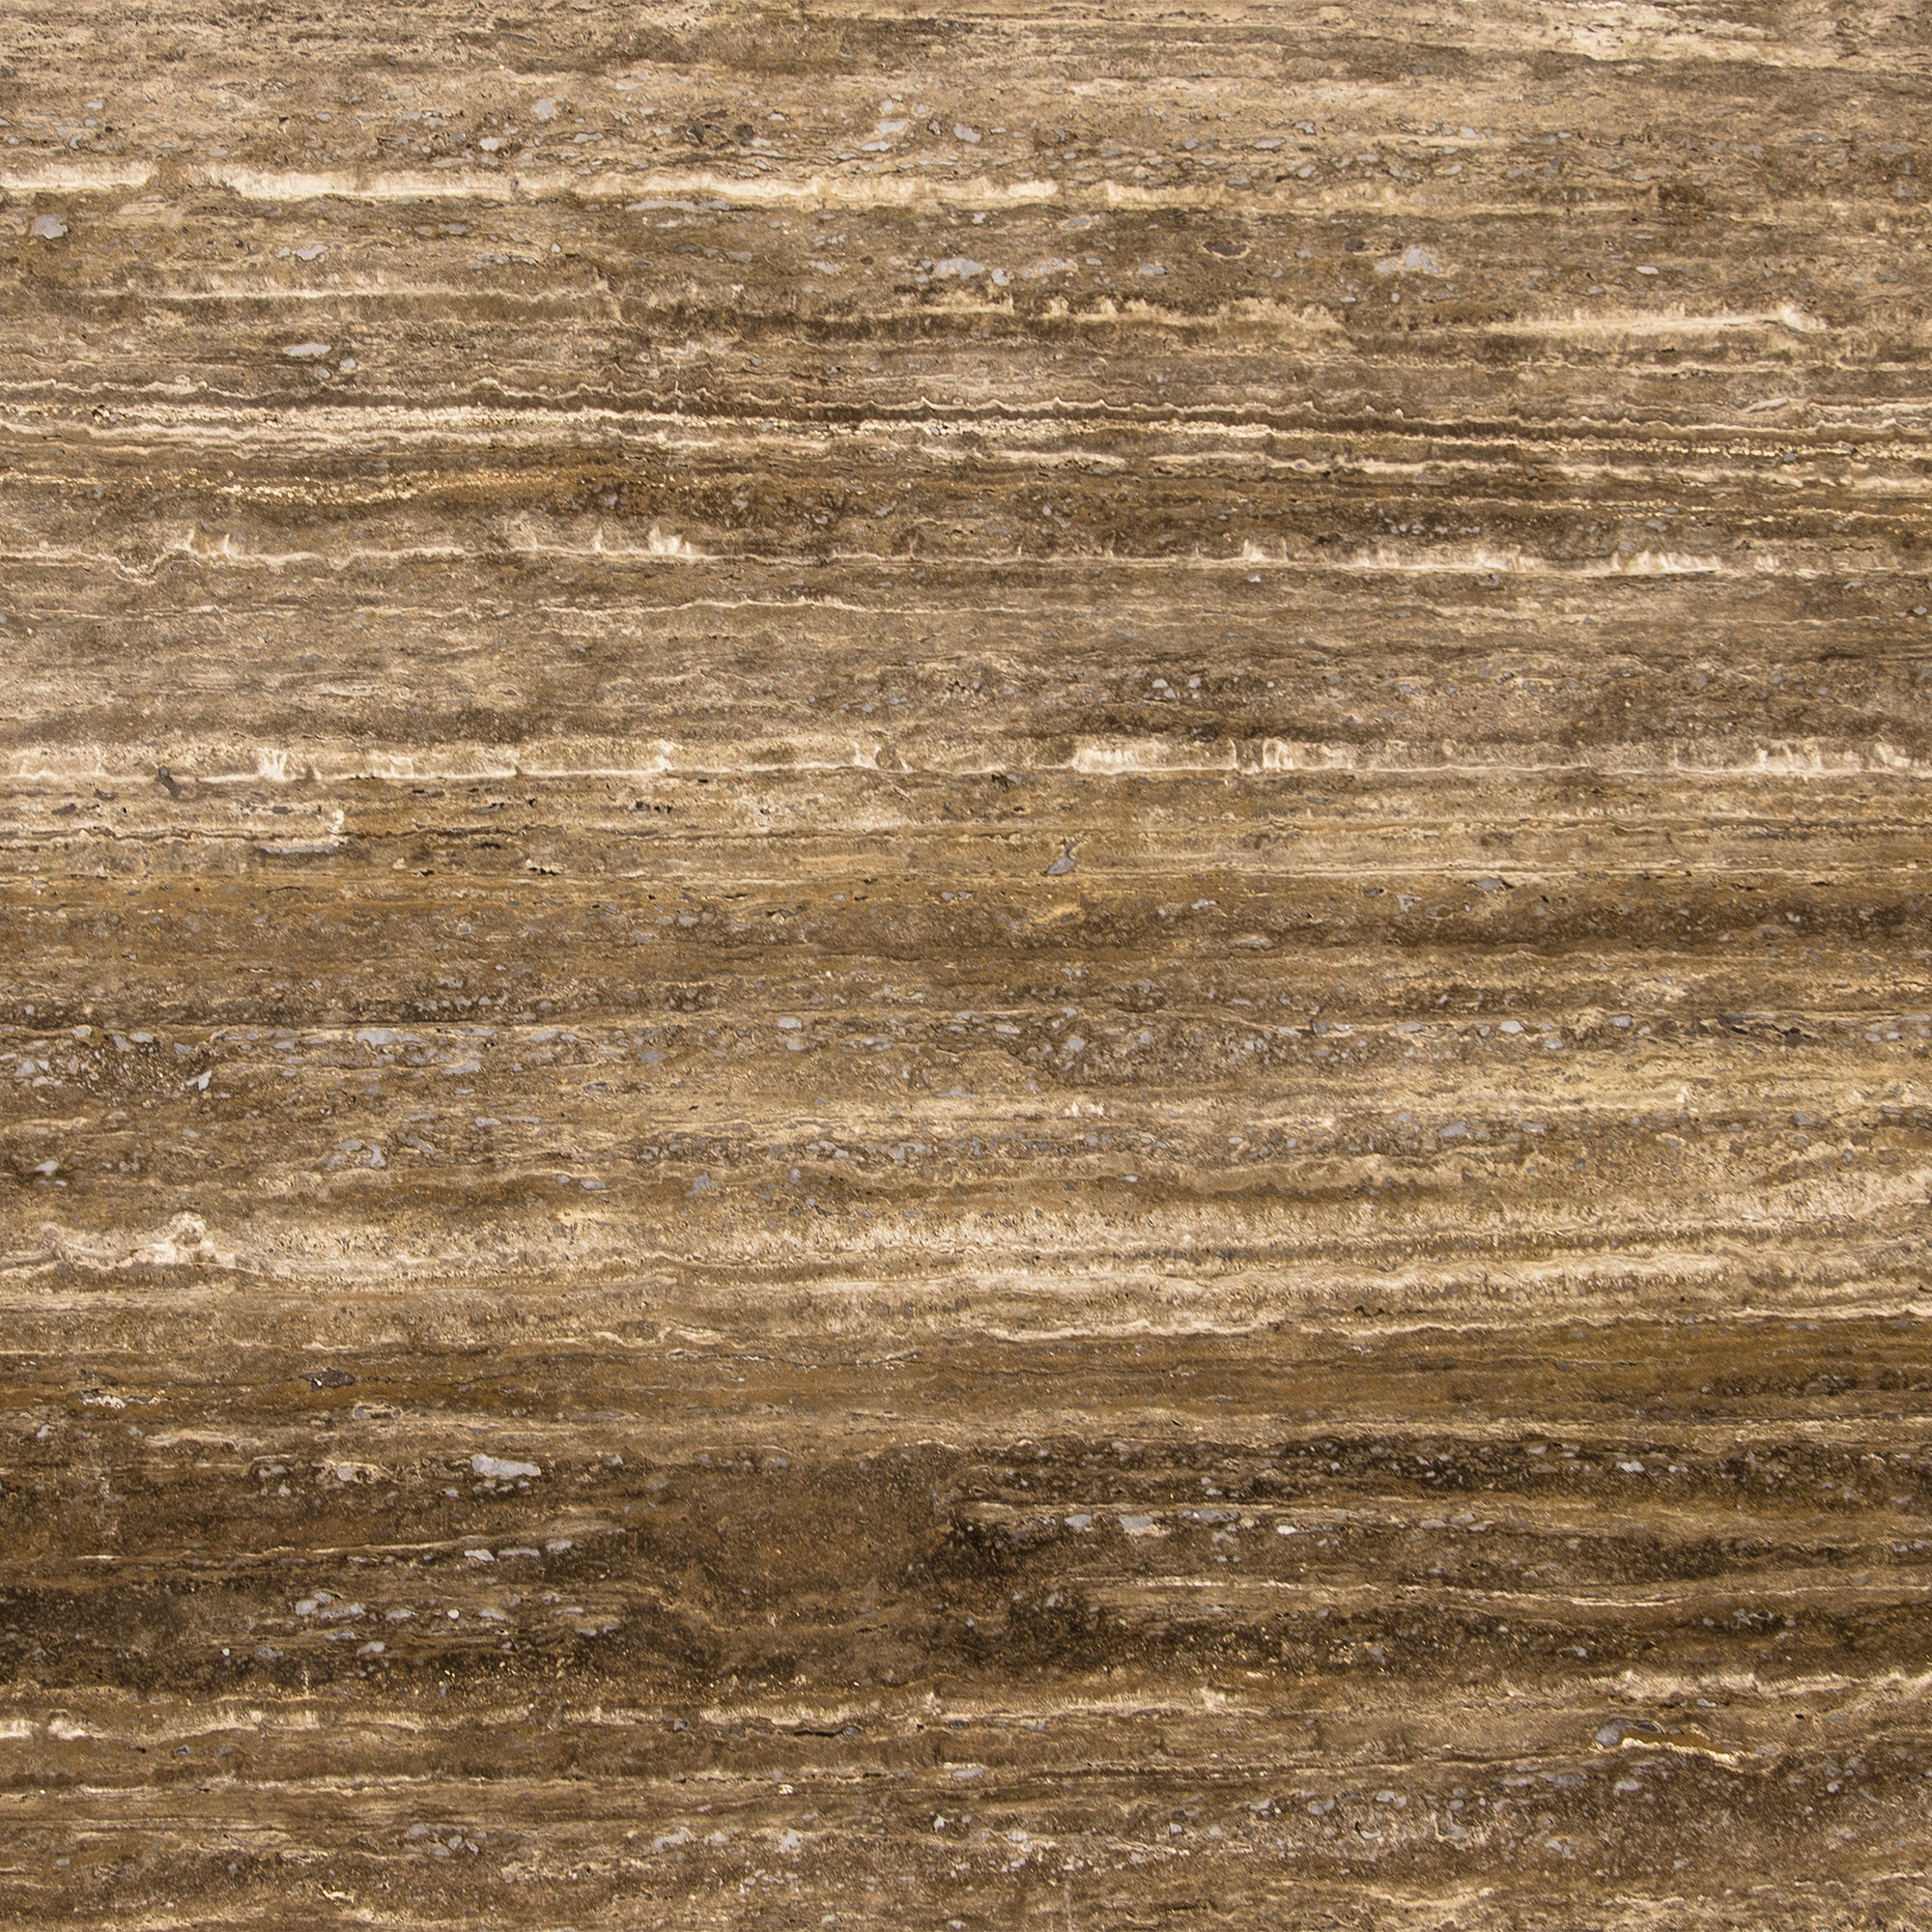 2cm Ocean Brown Travertine Swatch Card  Honed Samples Slab product photo